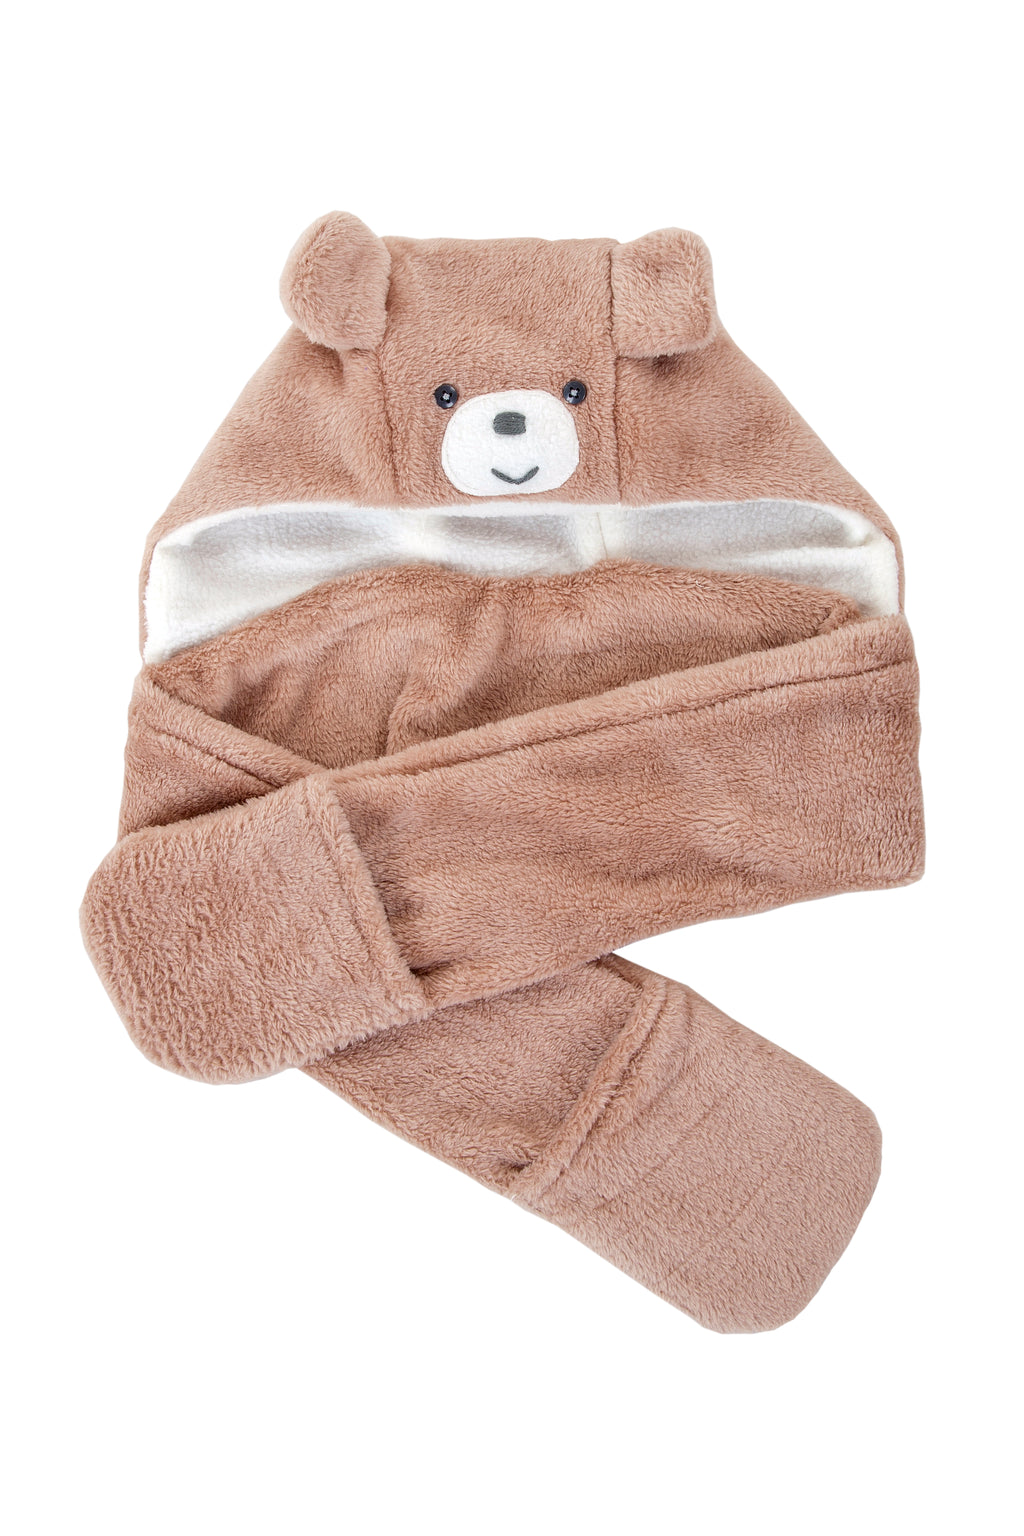 Winter Beanies / Unisex - Taupe Bear Beanie with Pocket Scarf - M0295